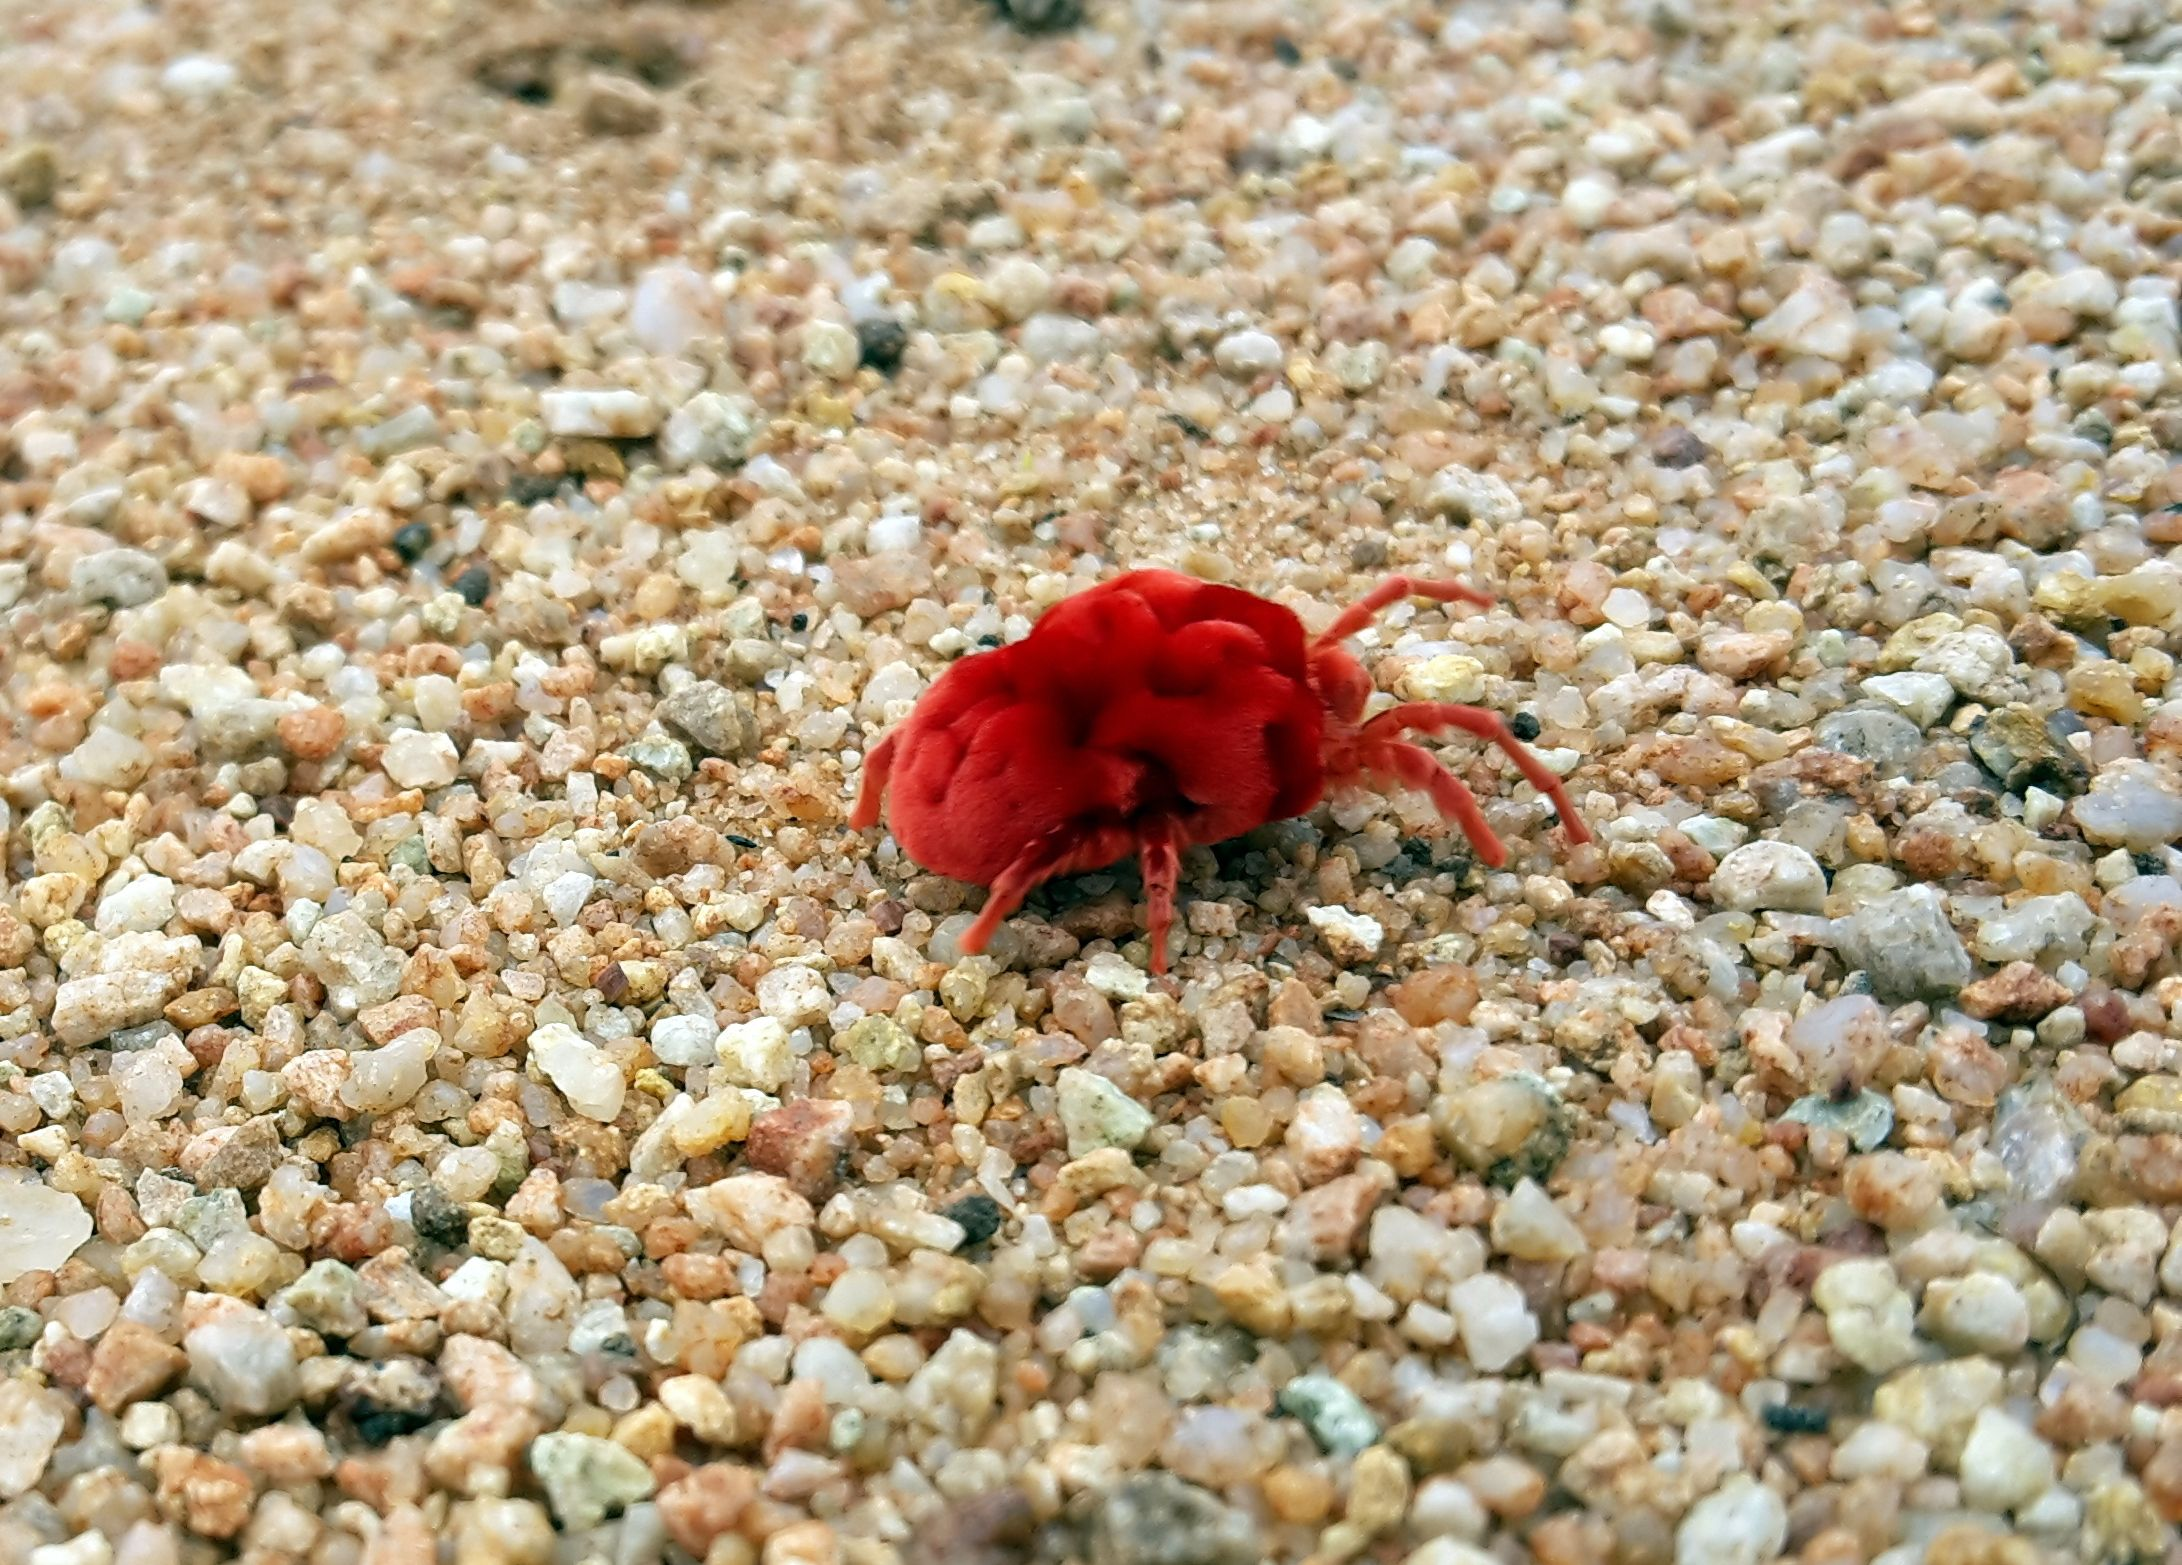 How To Get Rid of Chiggers | Porch, Clover mites, Eye worm